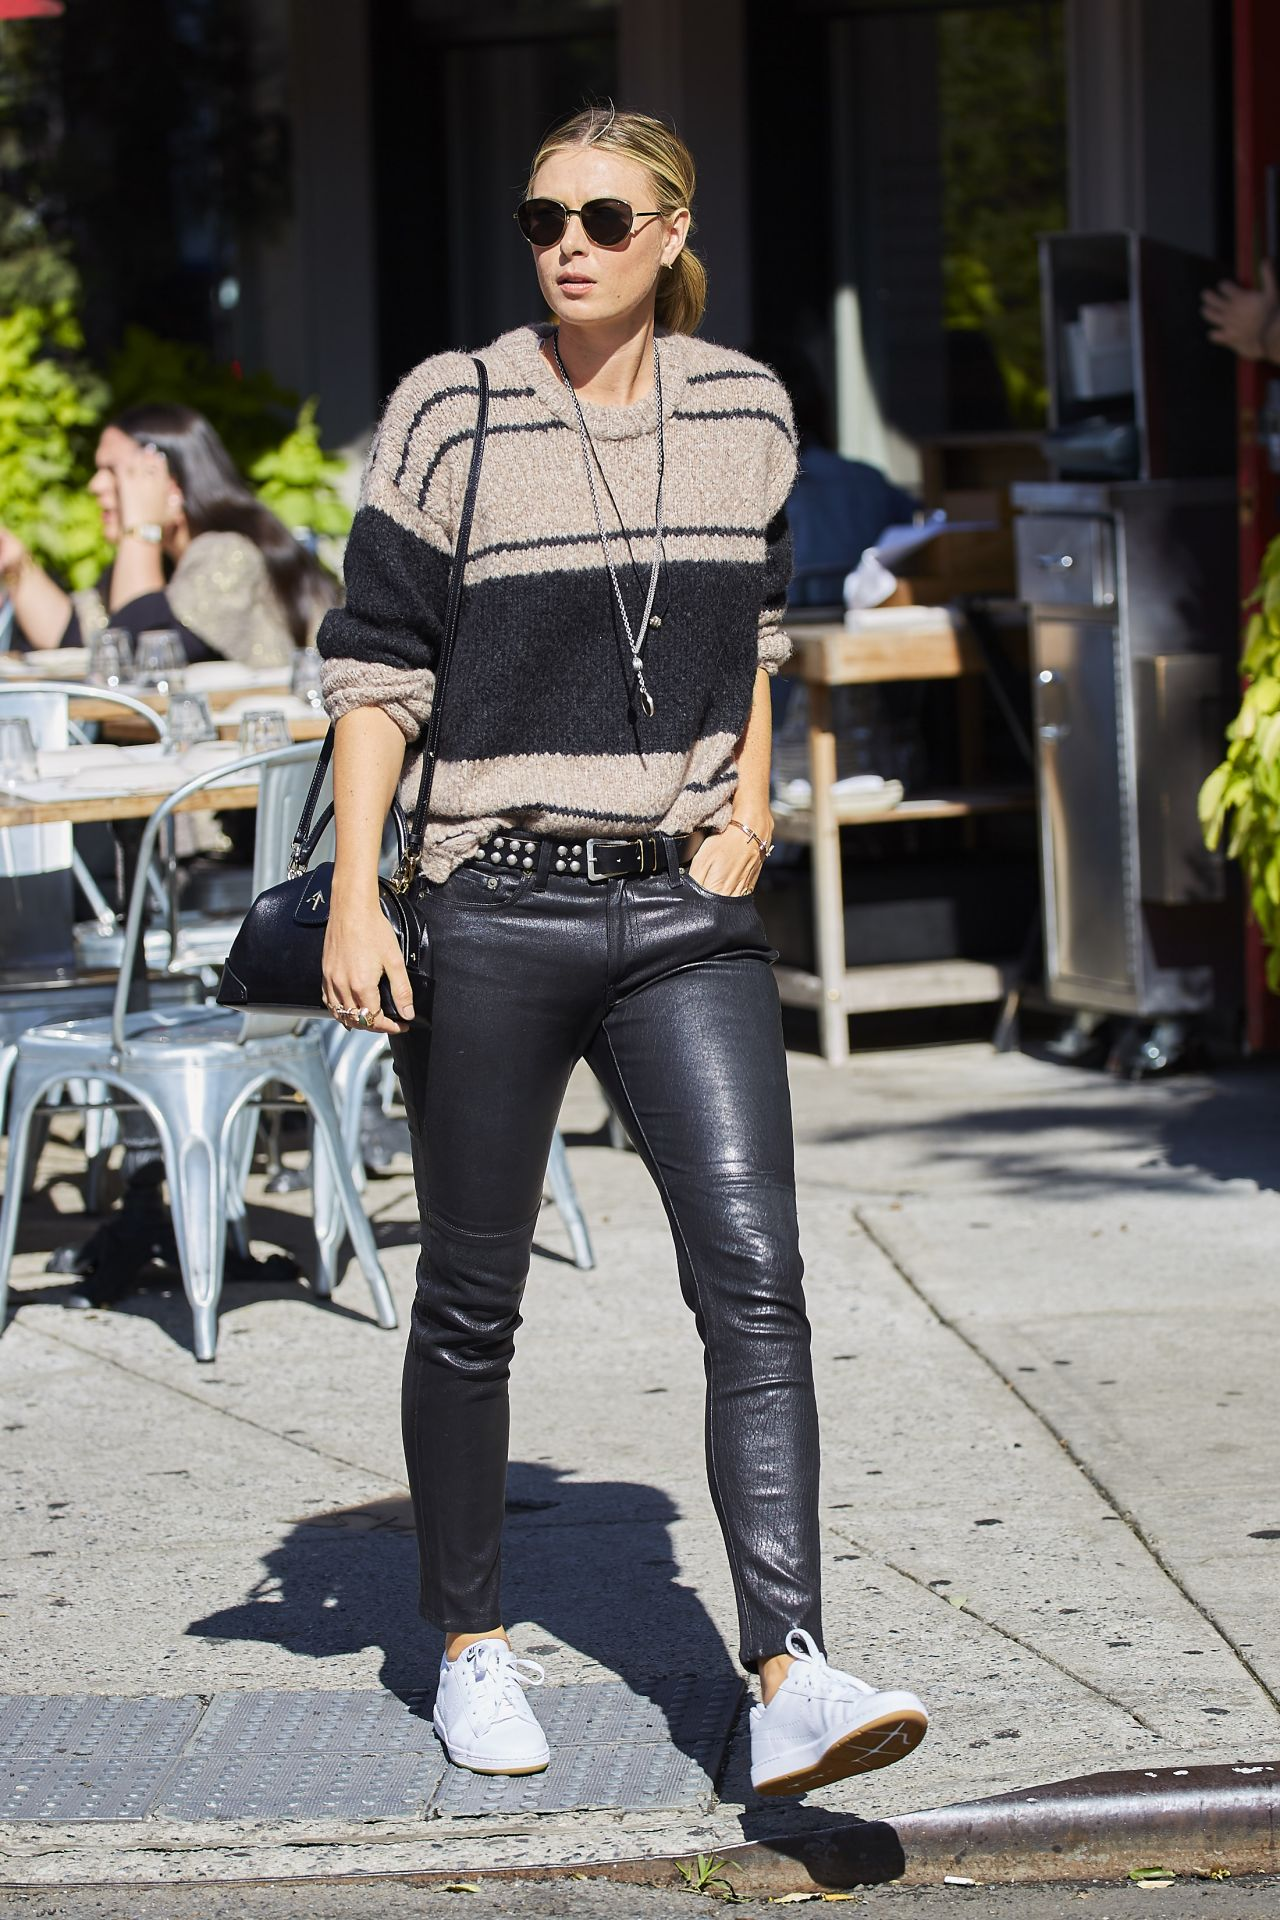 Maria Sharapova Wearing Leather Pants New York City 10 5